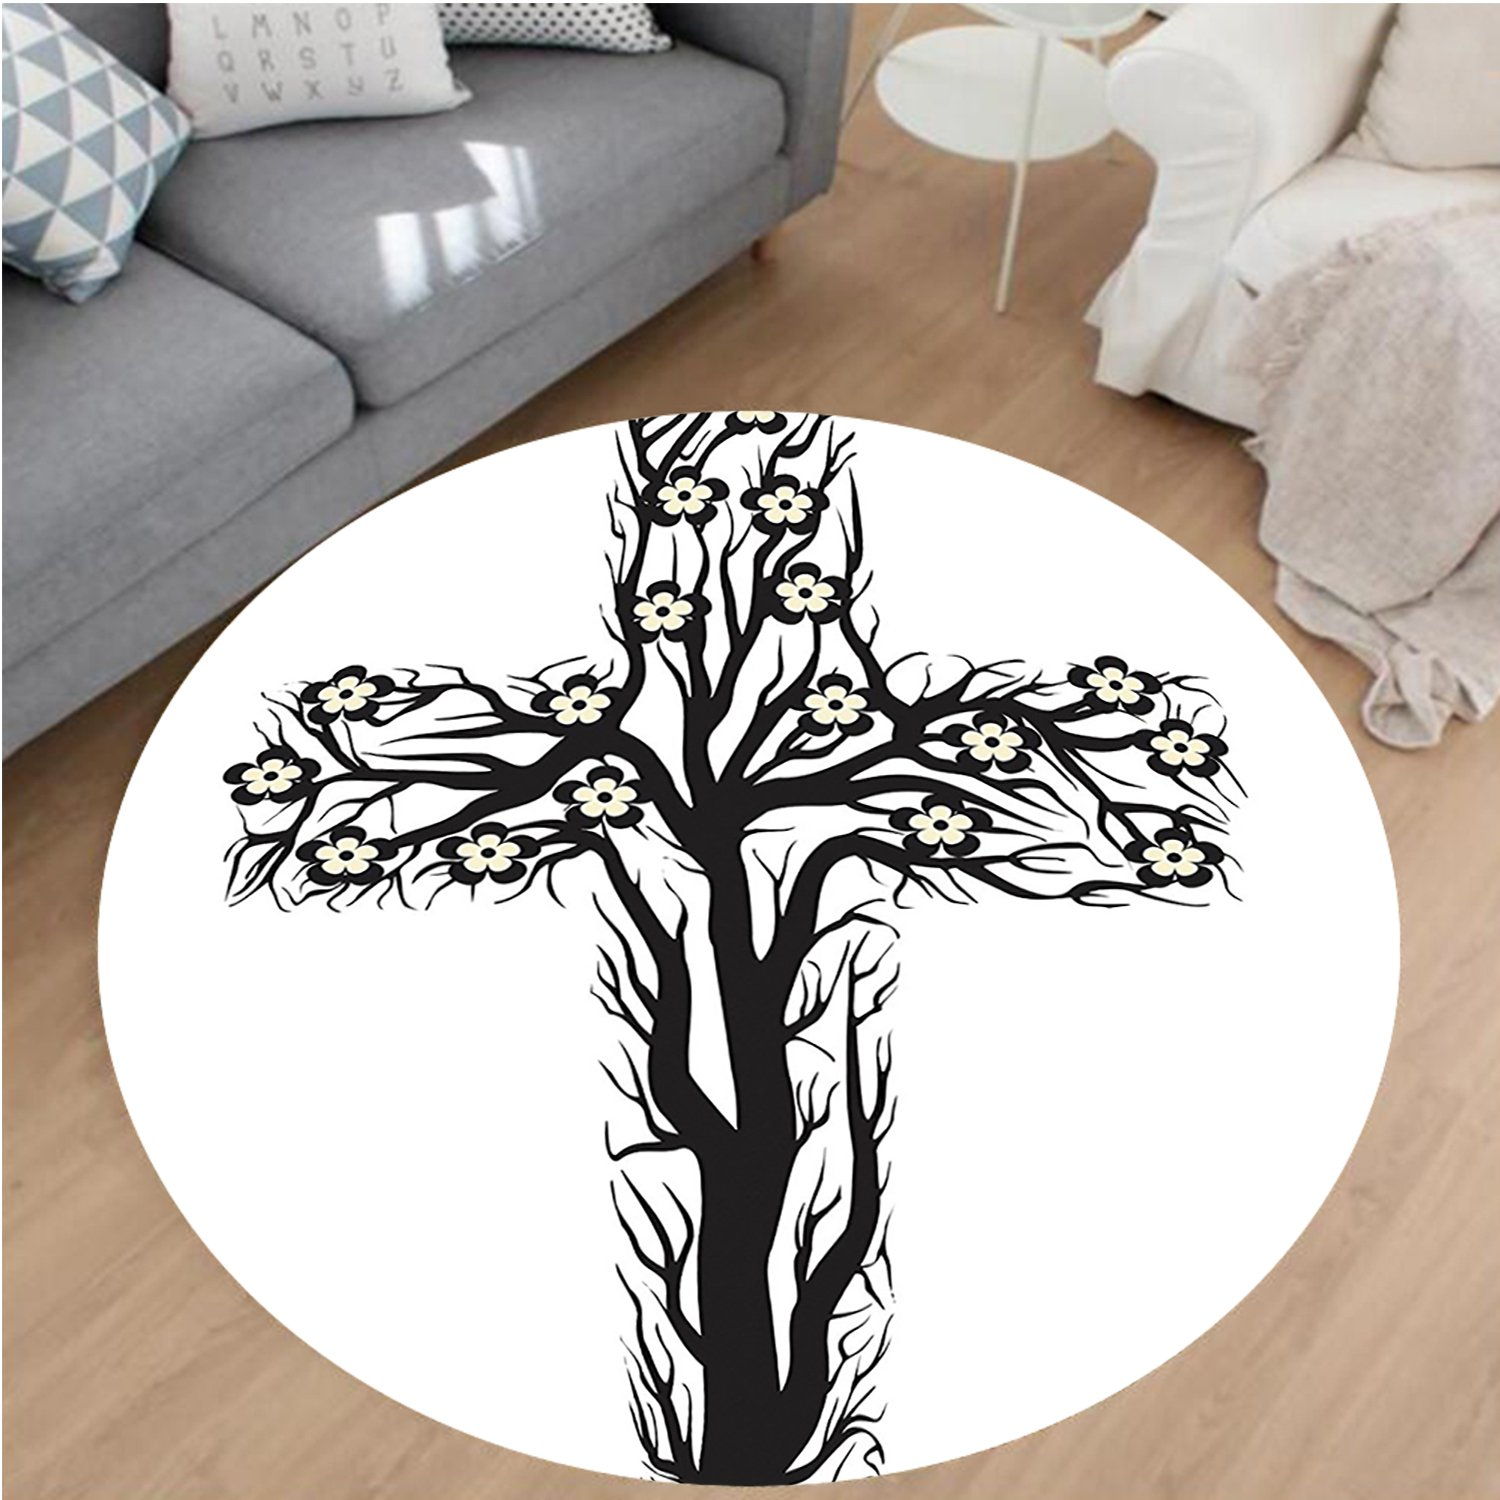 Nalahome Modern Flannel Microfiber Non-Slip Machine Washable Round Area Rug-l Christian Cross in Tree Shape Christ Religion Prayer Blessed Miracle Symbol Black White area rugs Home Decor-Round 75'' by Nalahome